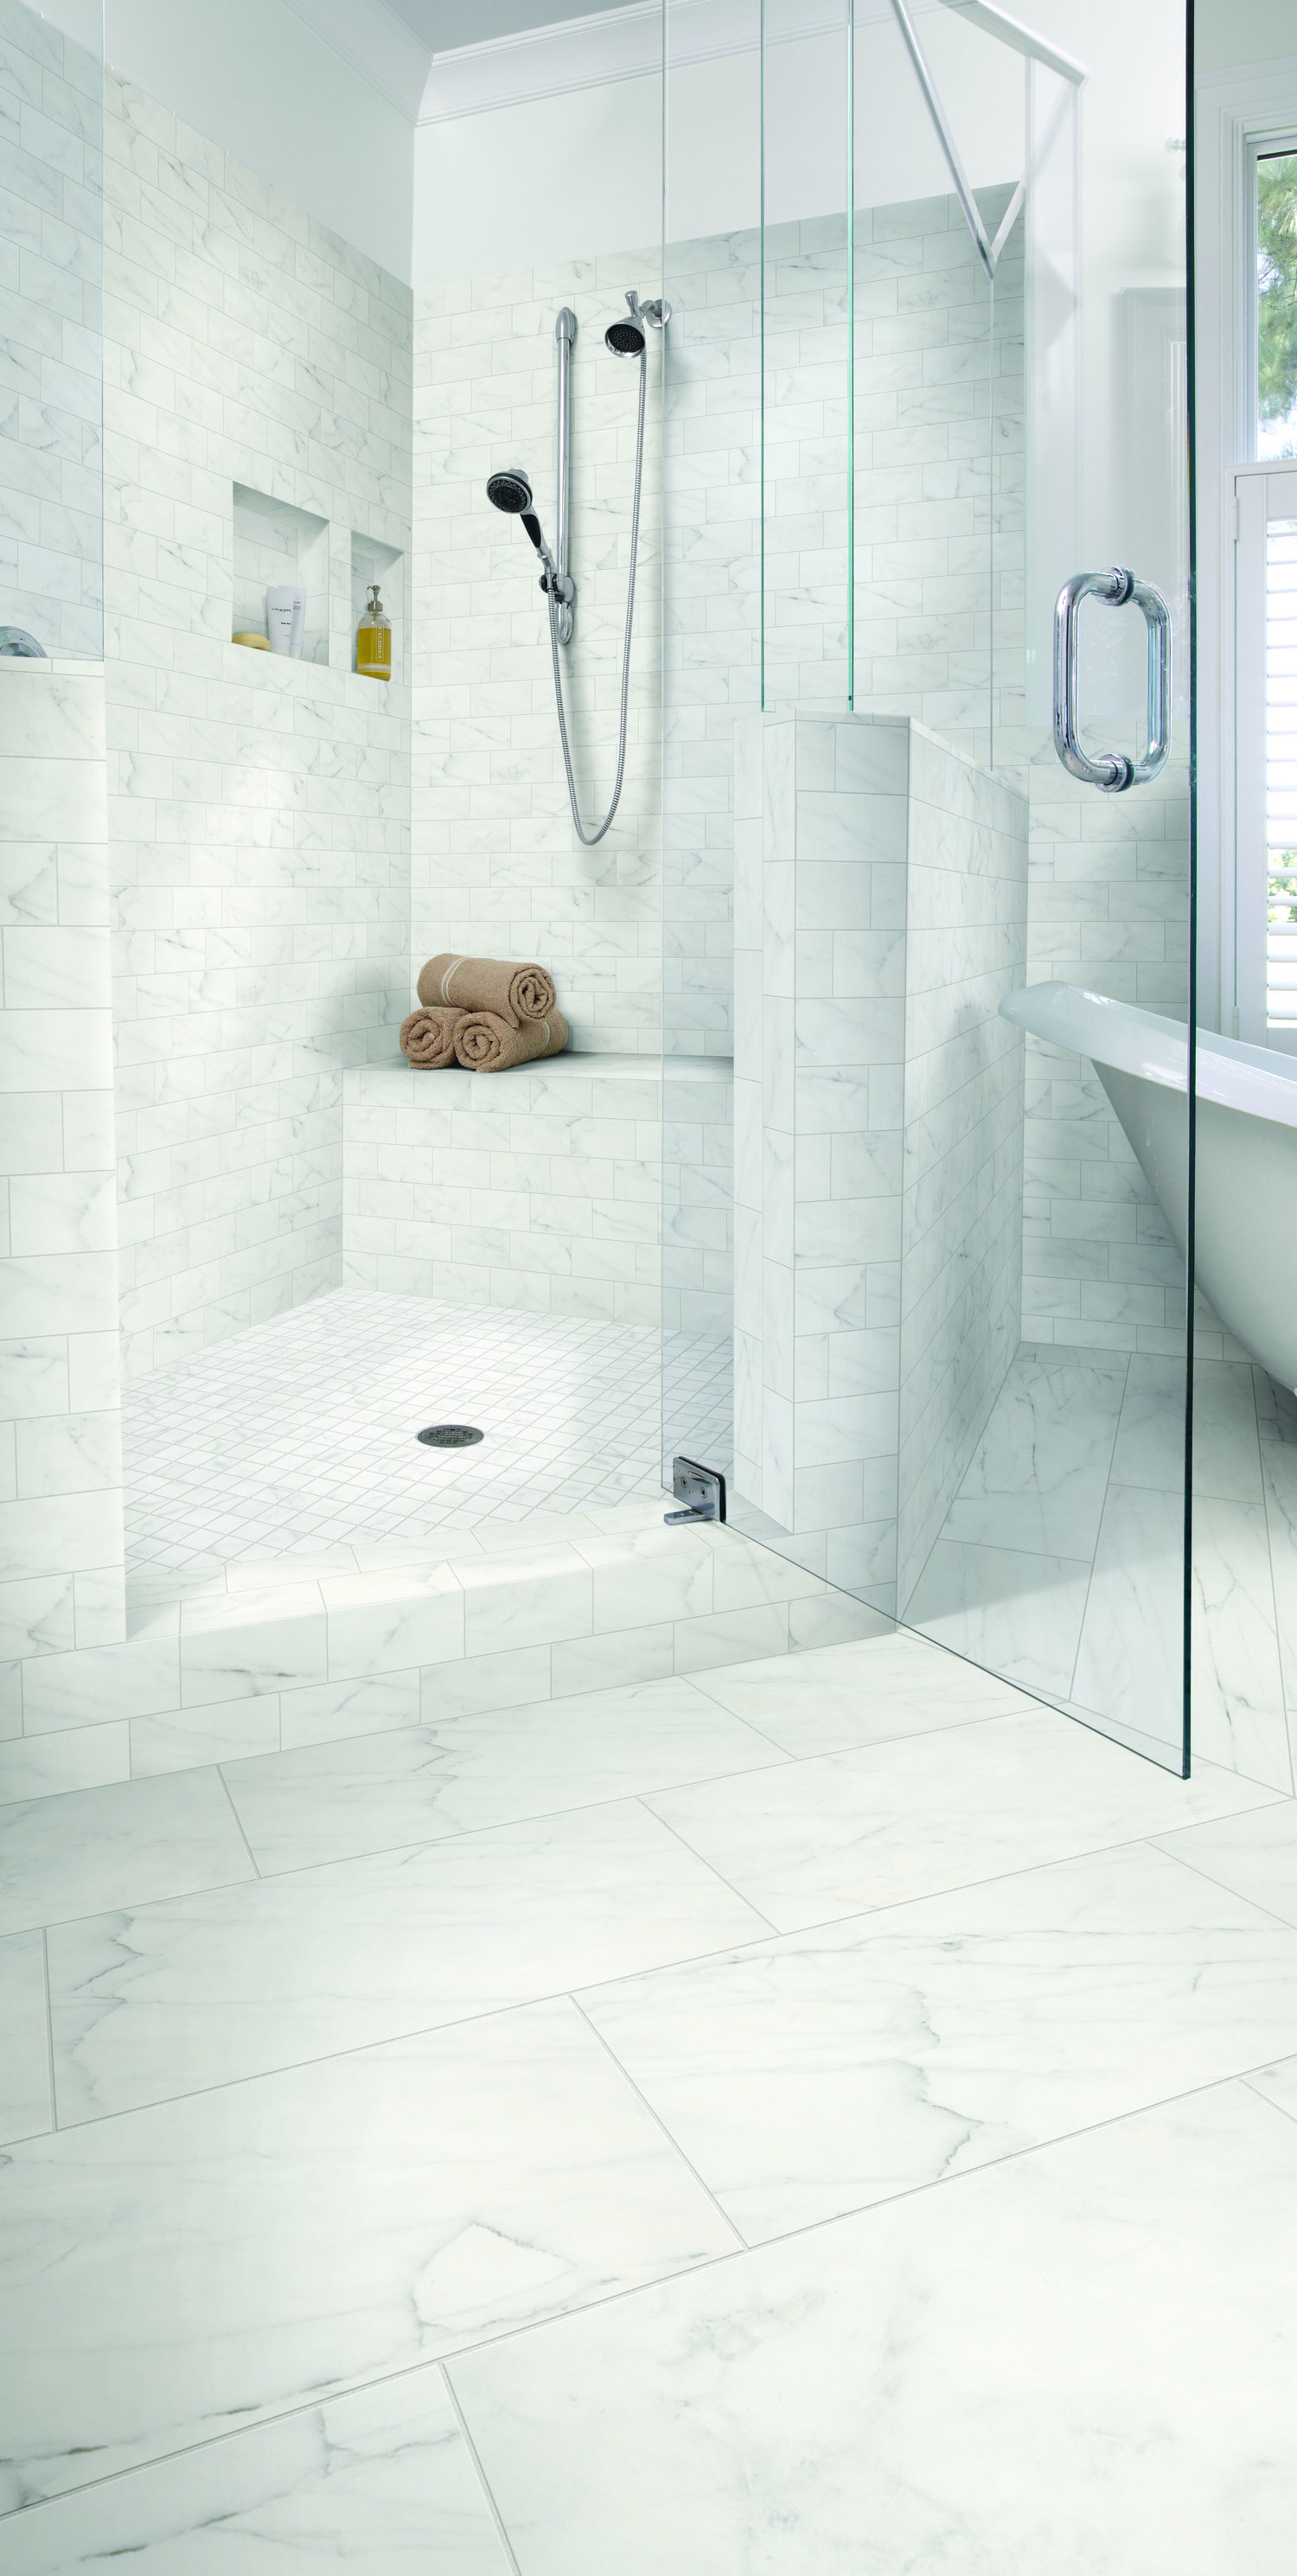 Tiled Shower Visions - Schlüter Systems — Days Flooring Company